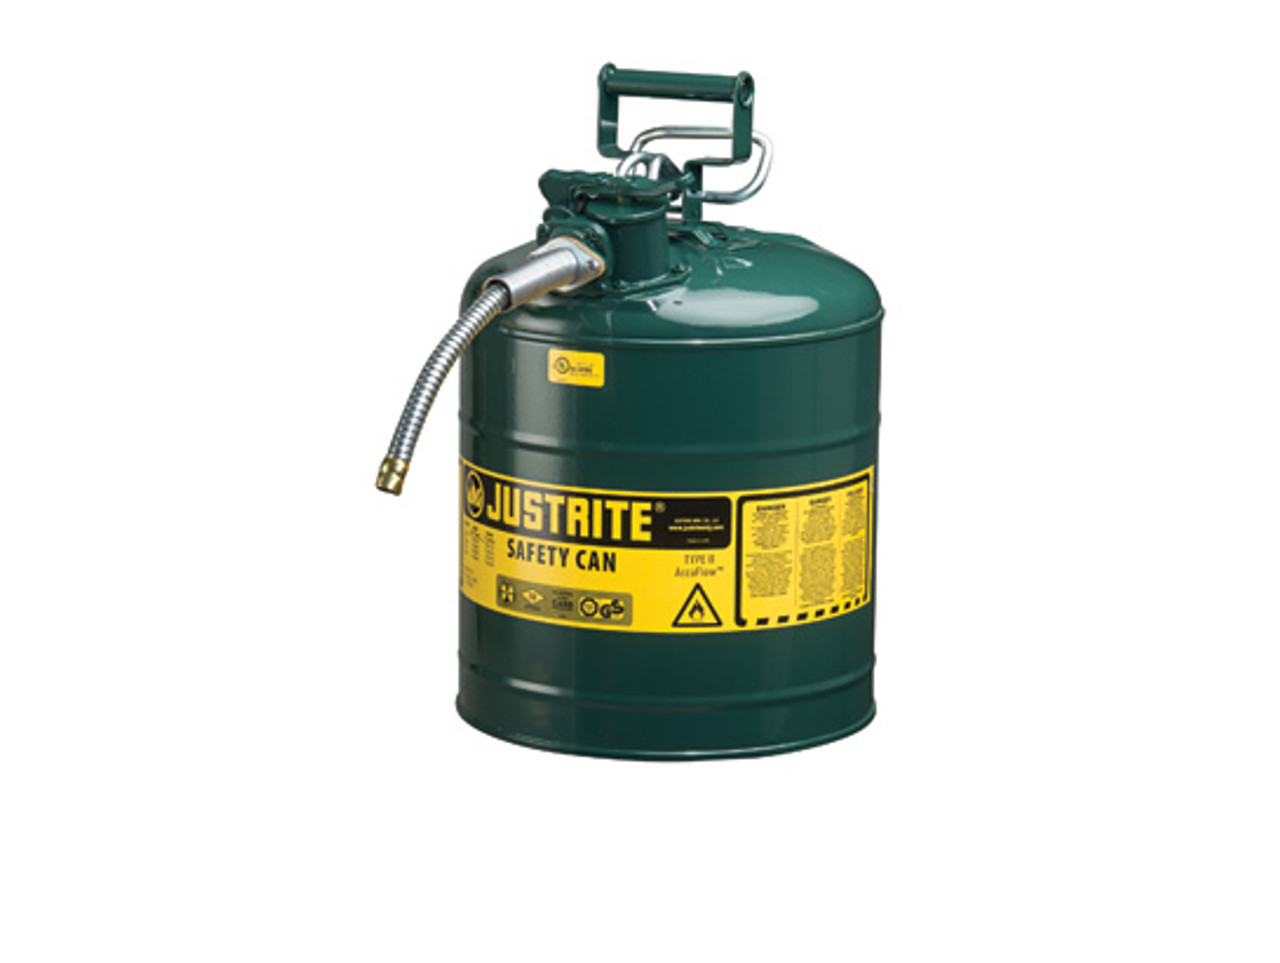 Safety Gas Can >> Justrite 7250430 Type Ii Accuflow 5 Gal Safety Gas Can W 1 In Spout Green